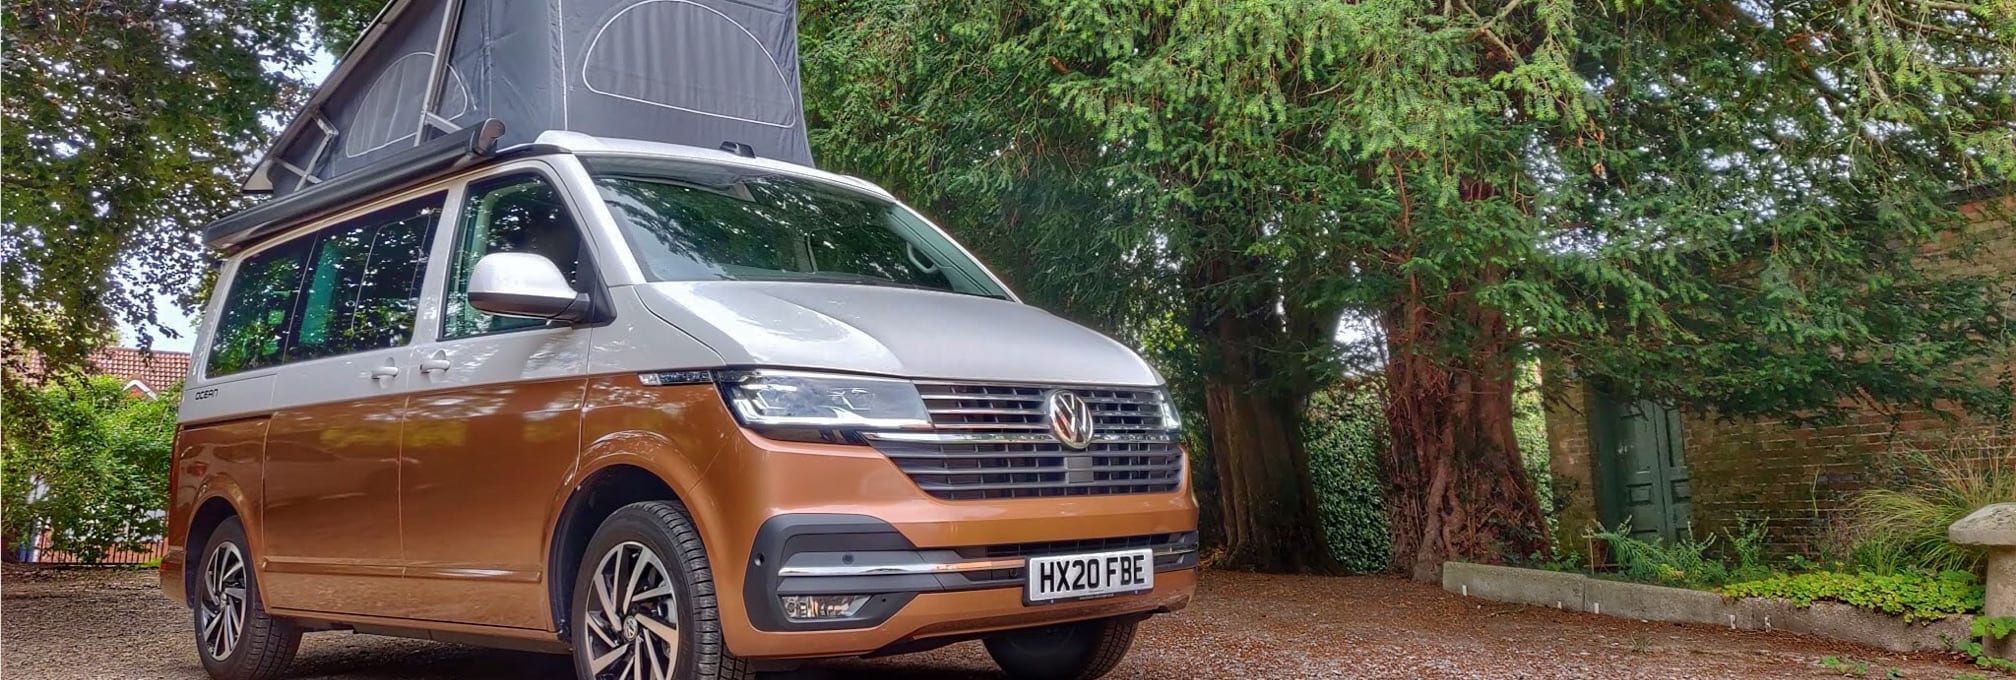 A brown and white, two tone VW campervan, parked in a forest car park.